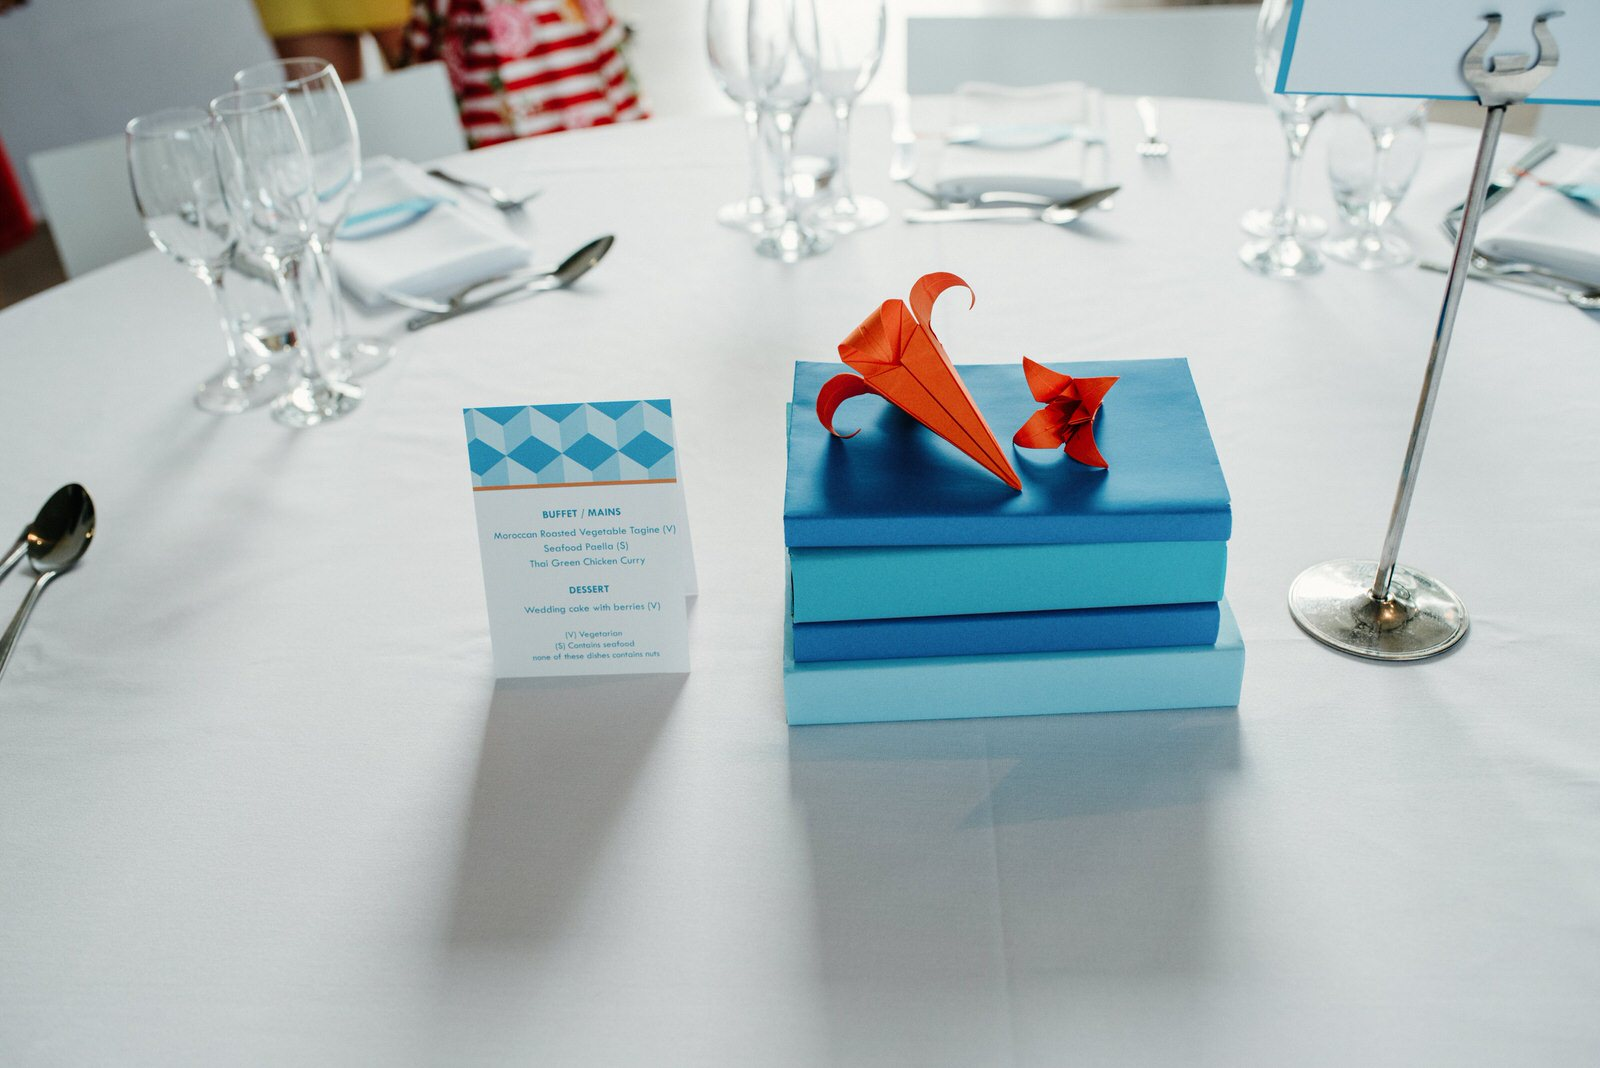 Colourful table decor details featuring paper origami details and books